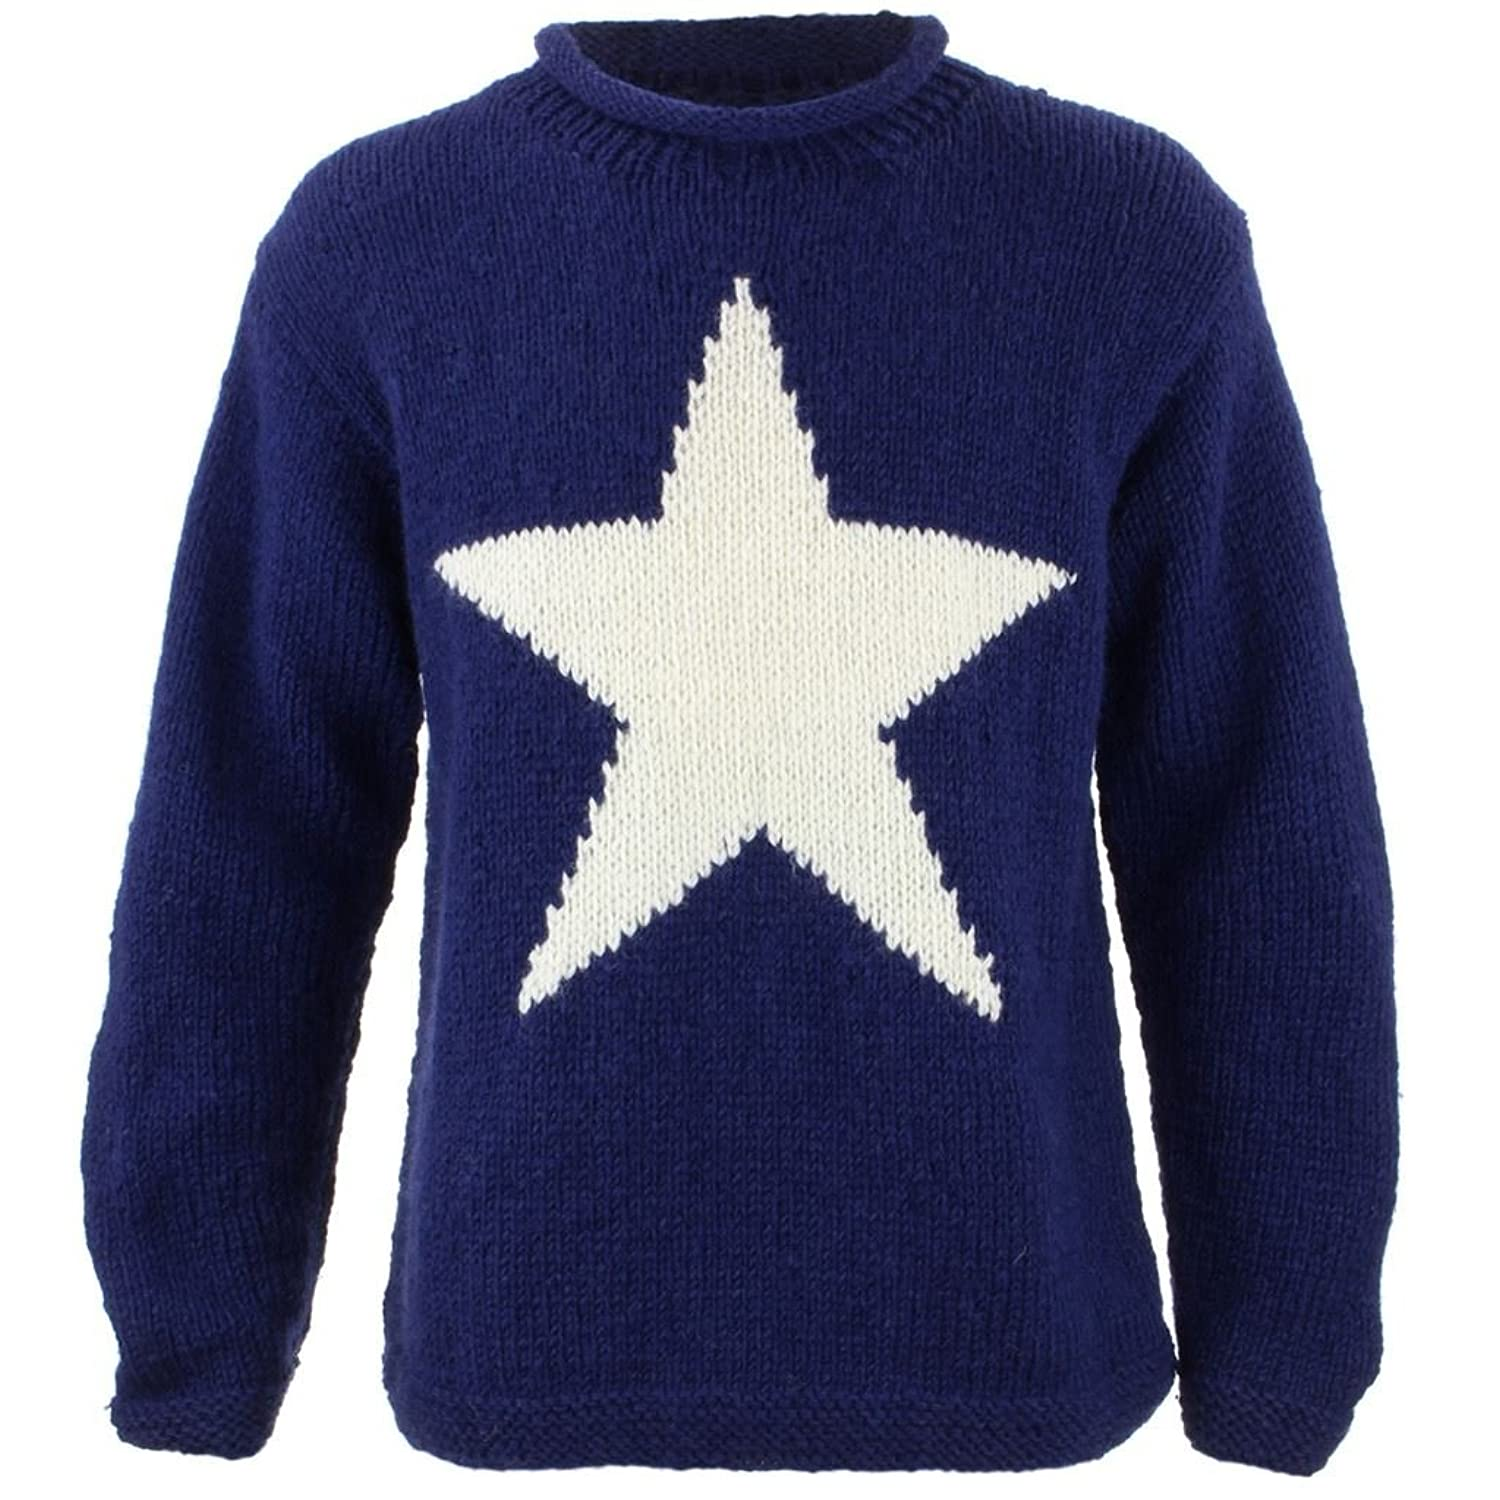 LoudElephant Chunky Wool Knit Star Jumper - Navy with Cream Star